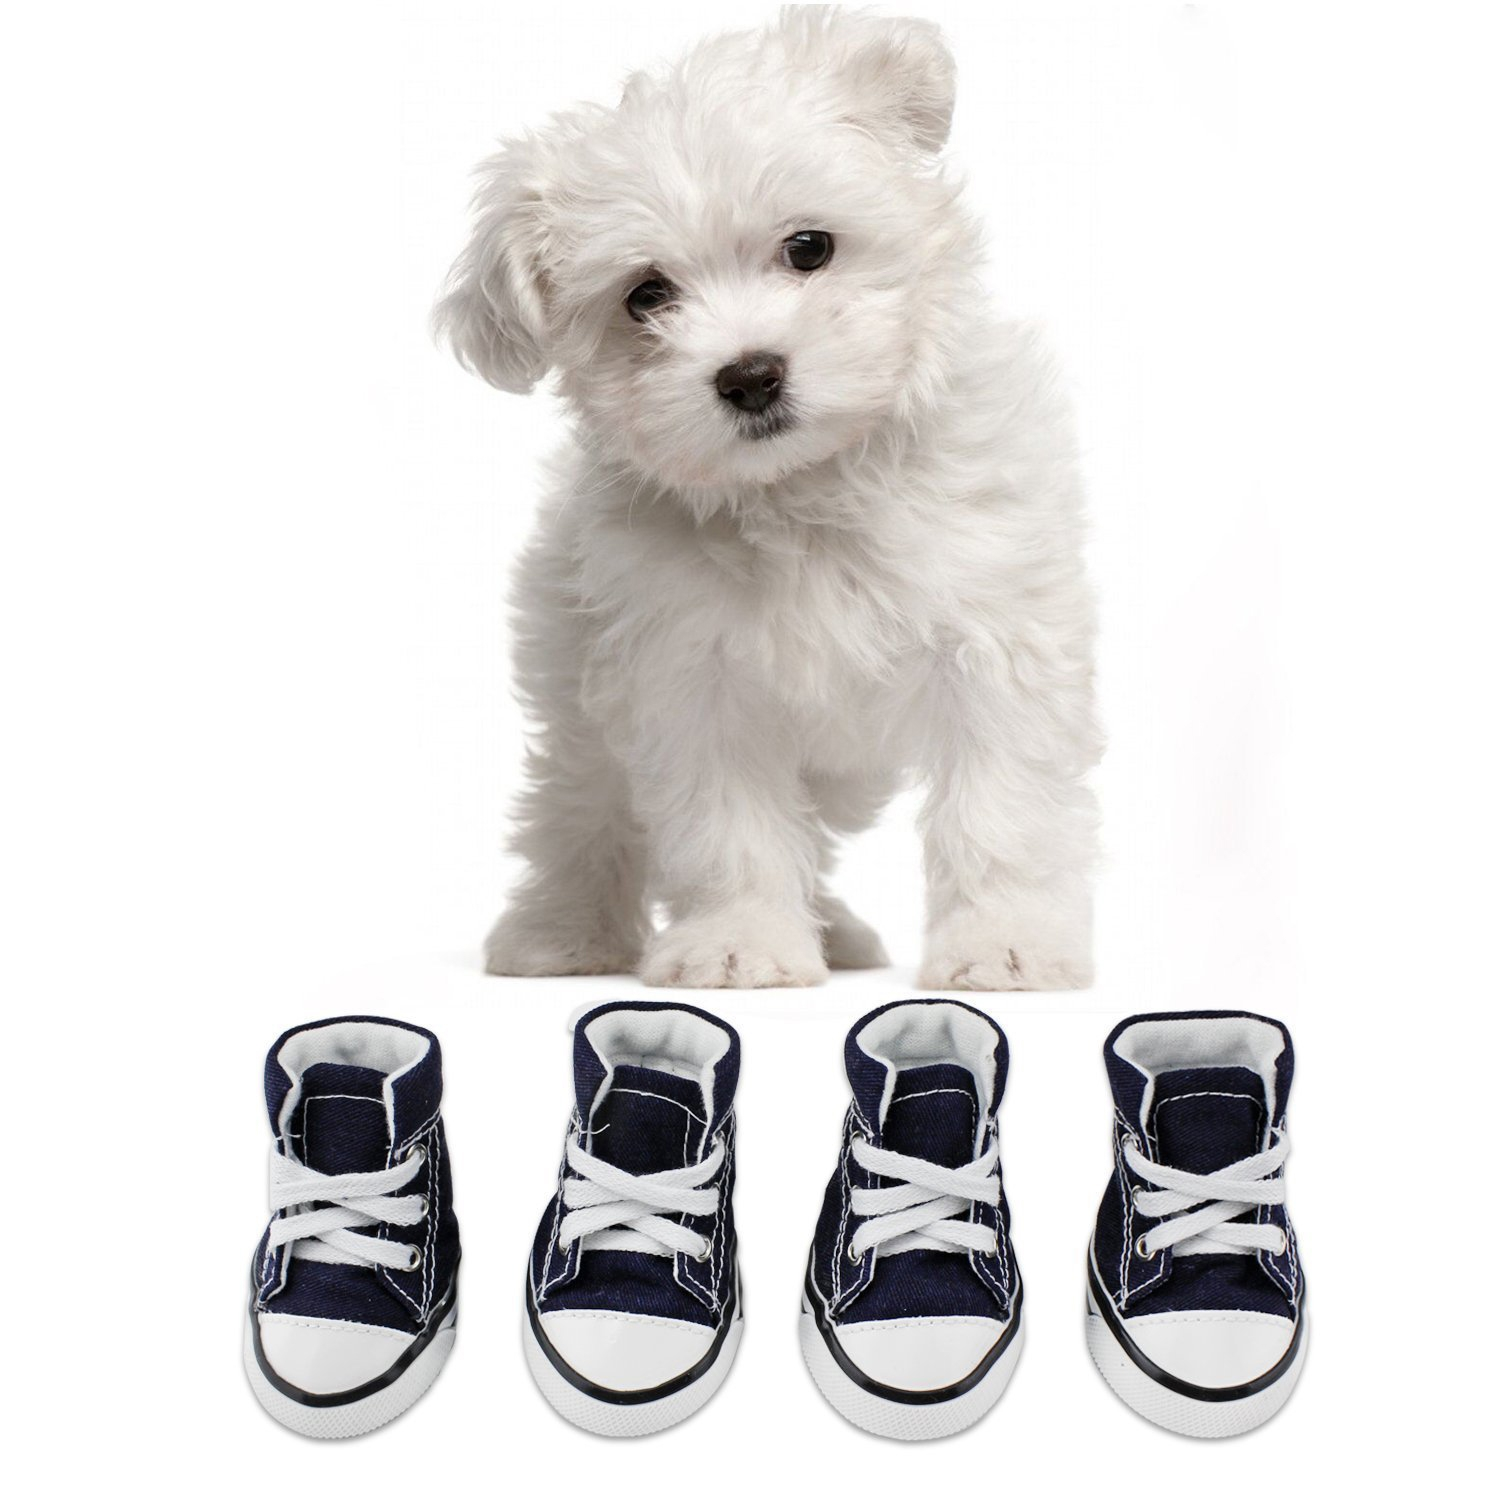 Puppy-Canvas-Sport-Shoes-Sneaker-Boots